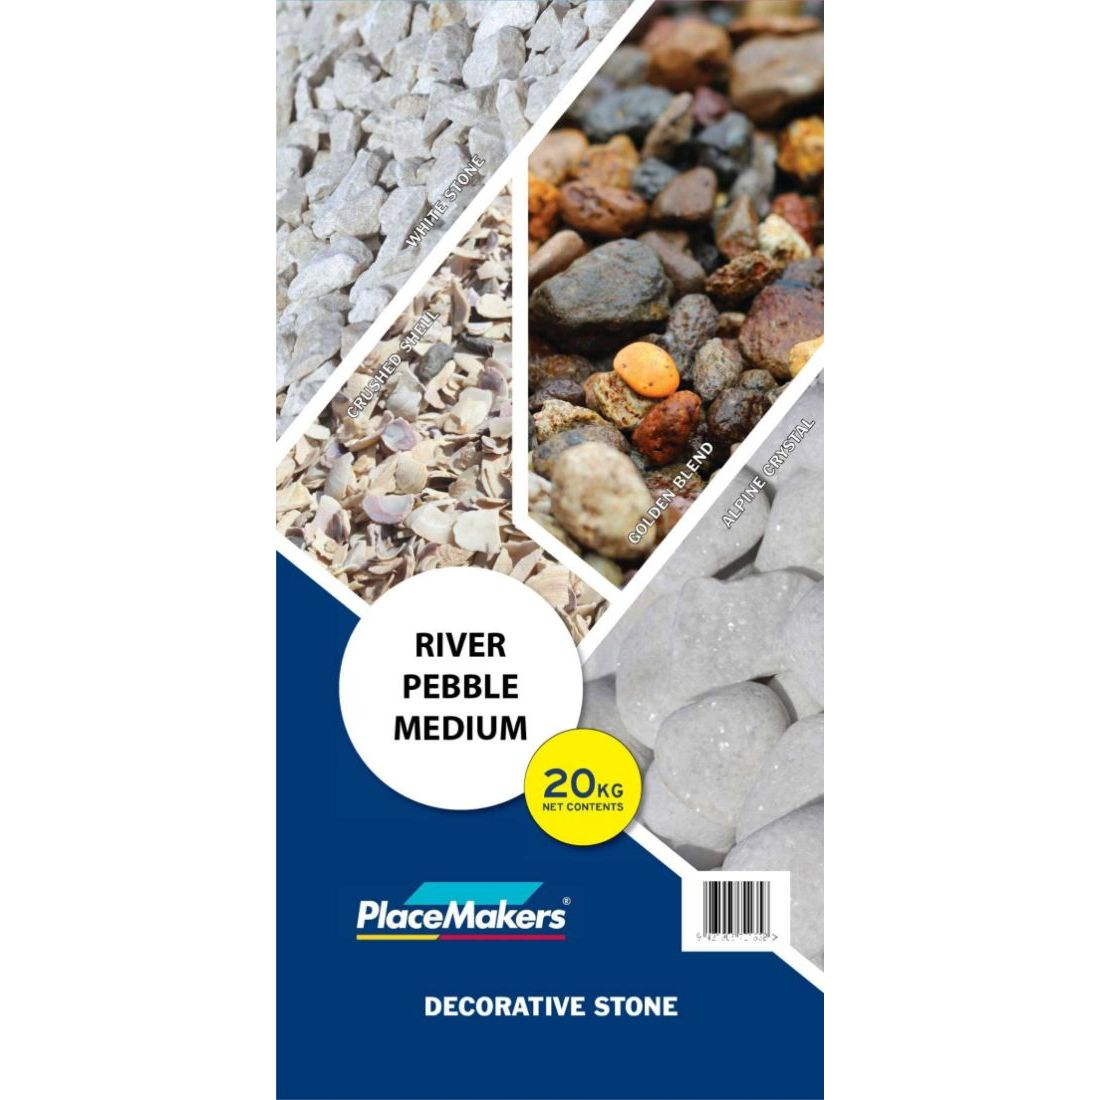 River Pebble Medium 20kg